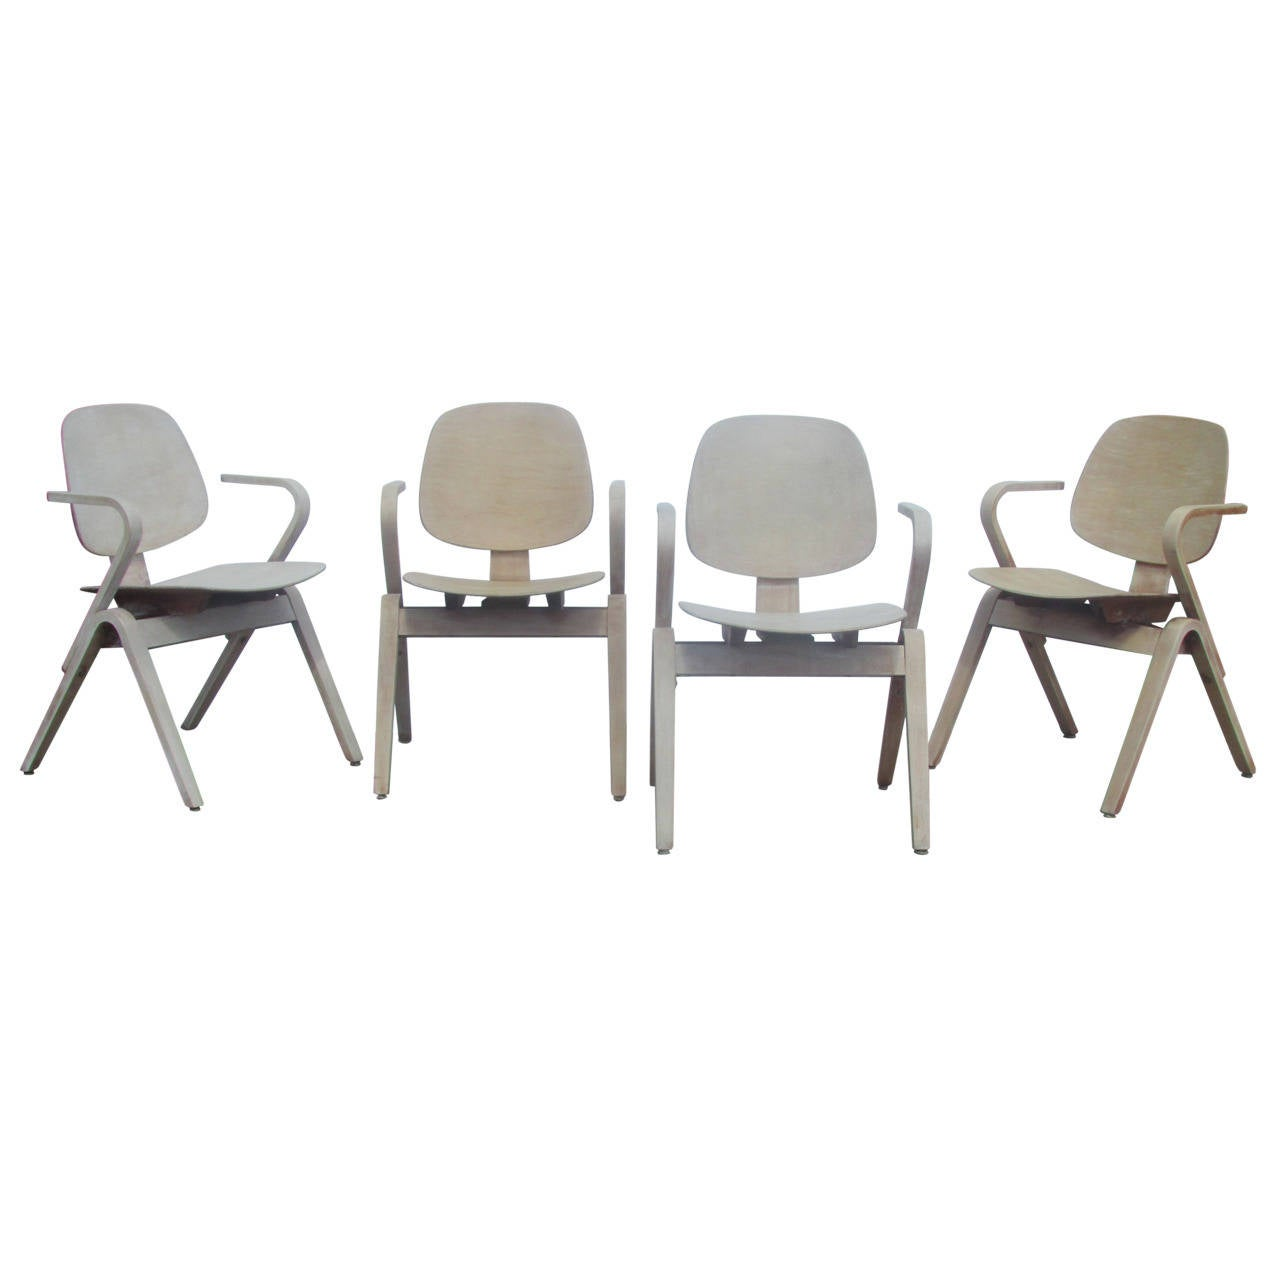 Thonet Bentwood Armchairs by Joe Atkinson ( 2 chairs sold - 2 chairs available )